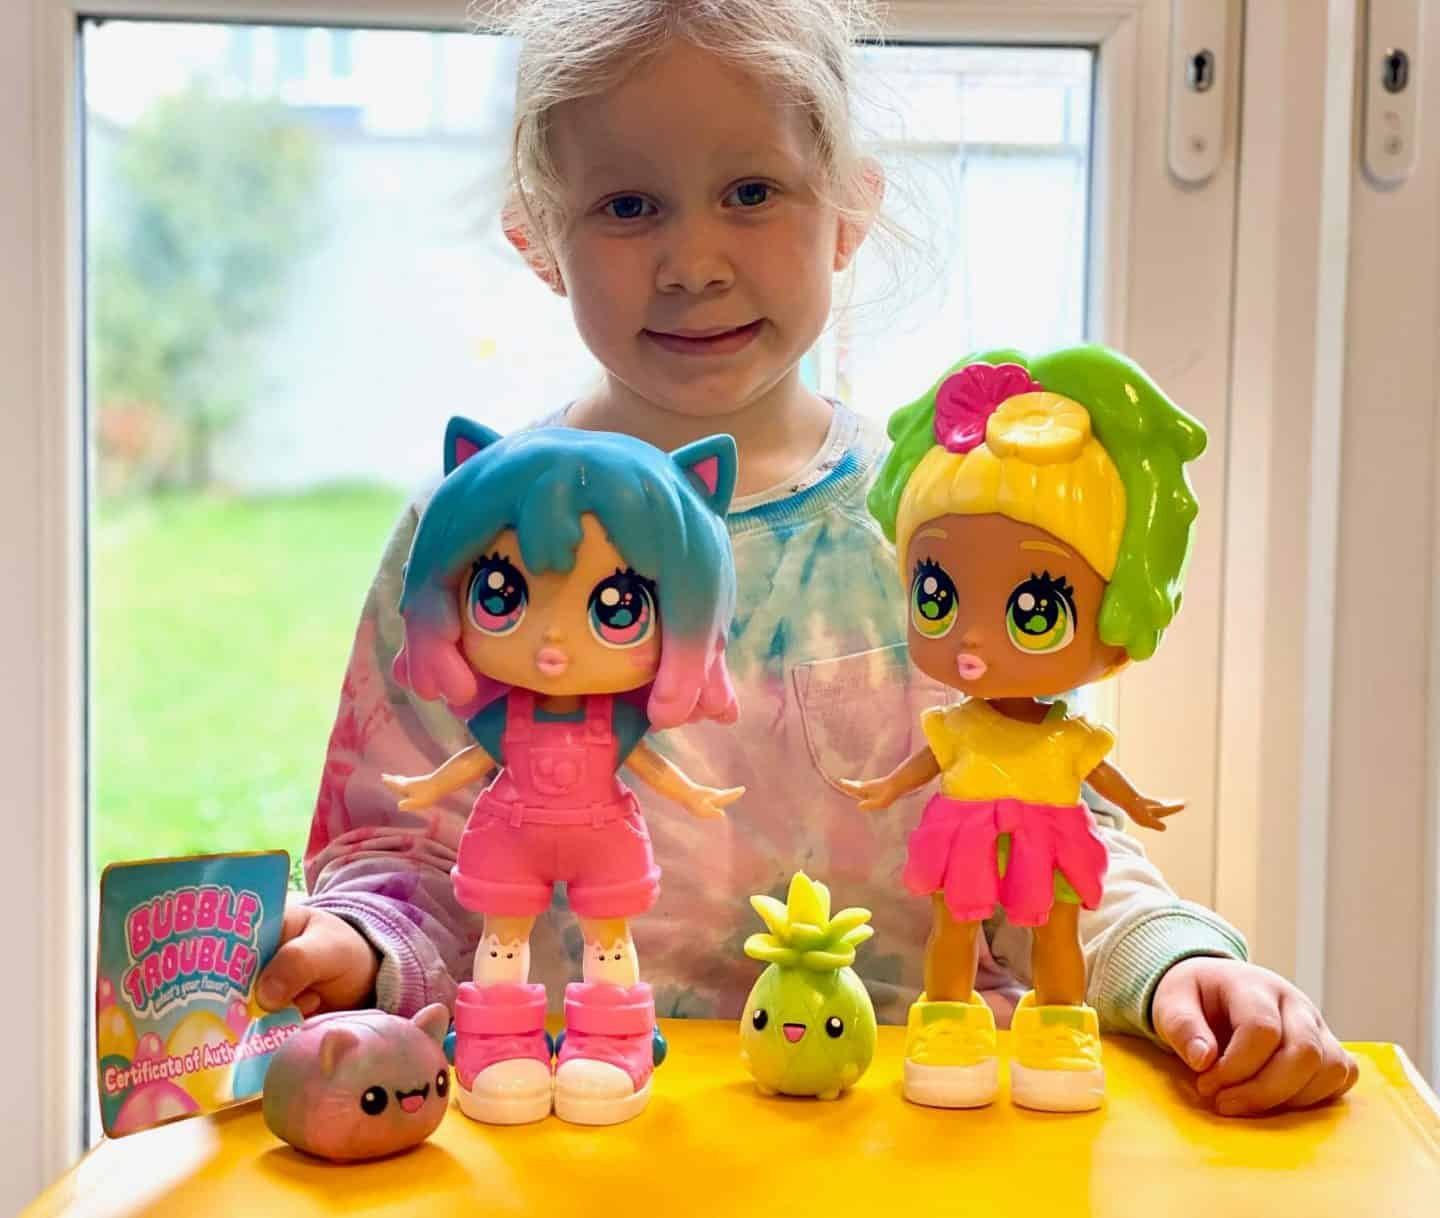 Bubble Trouble dolls with a certificate of authenticity